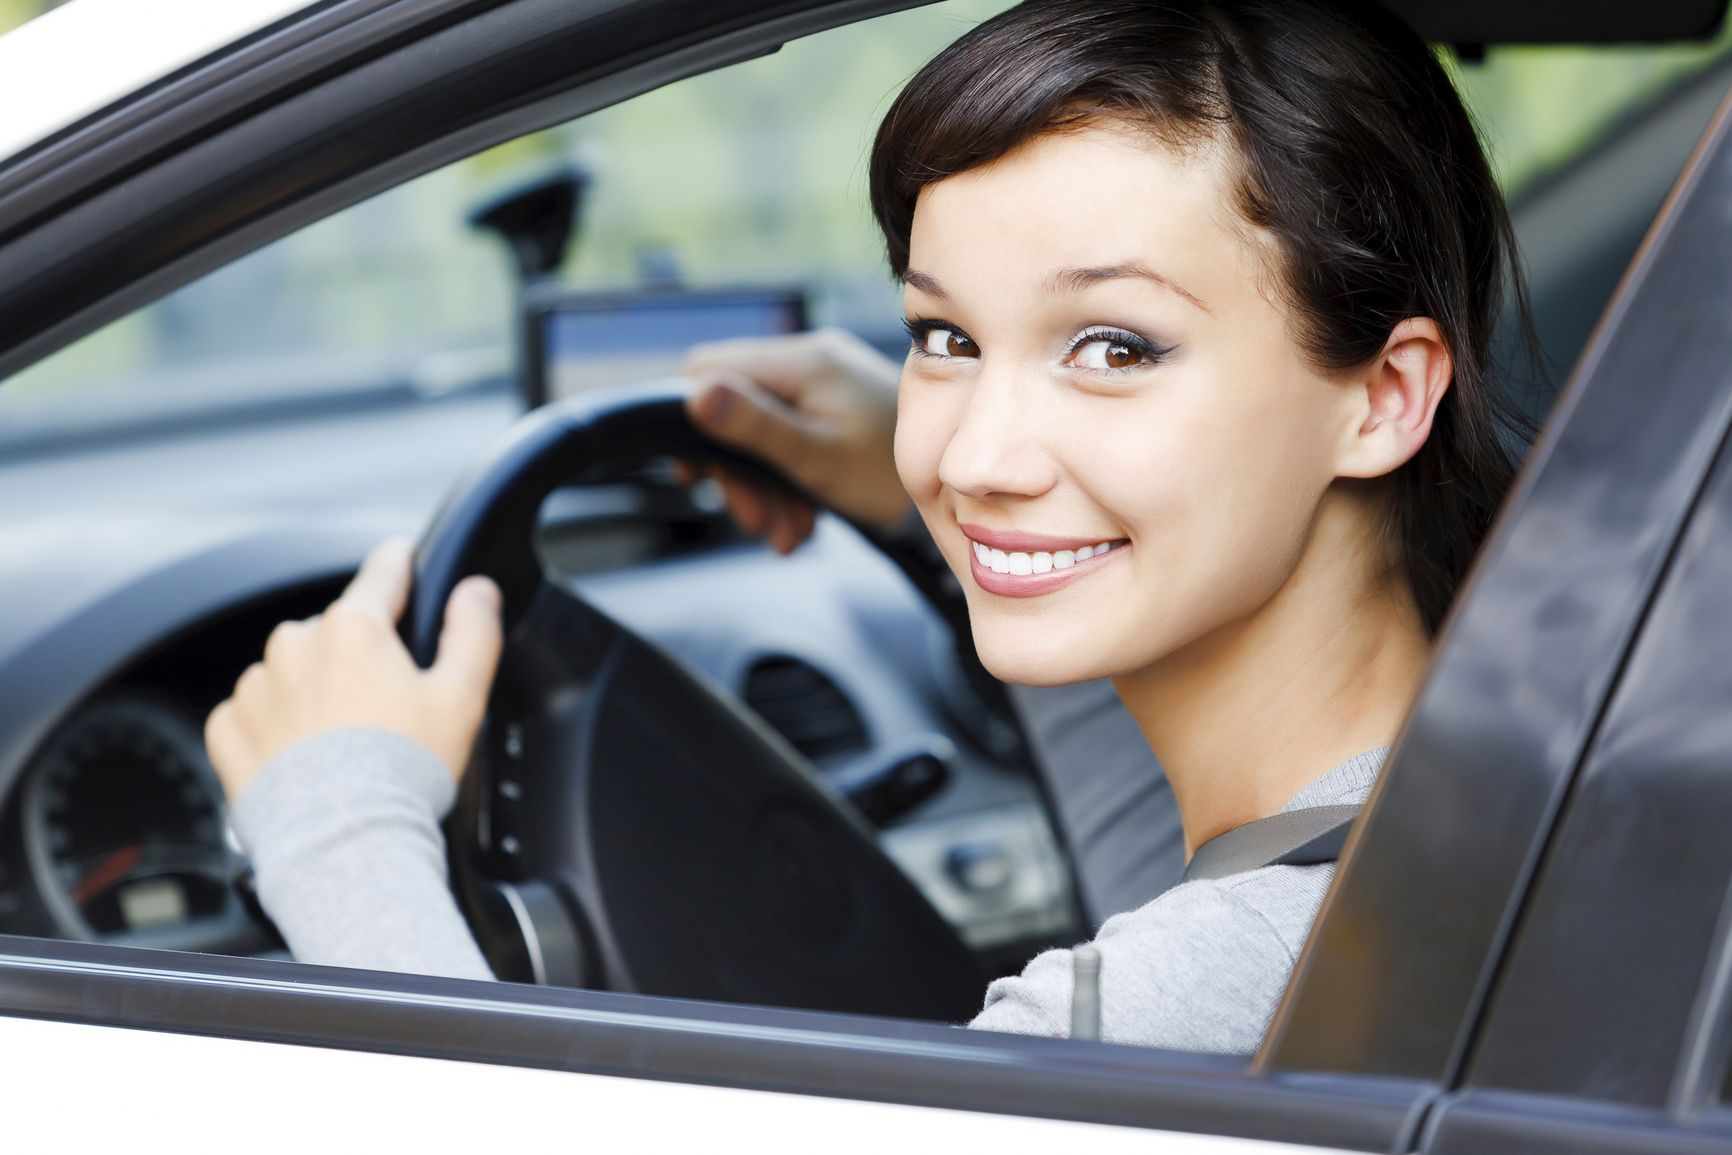 For dealerlicense ny application requirements get in